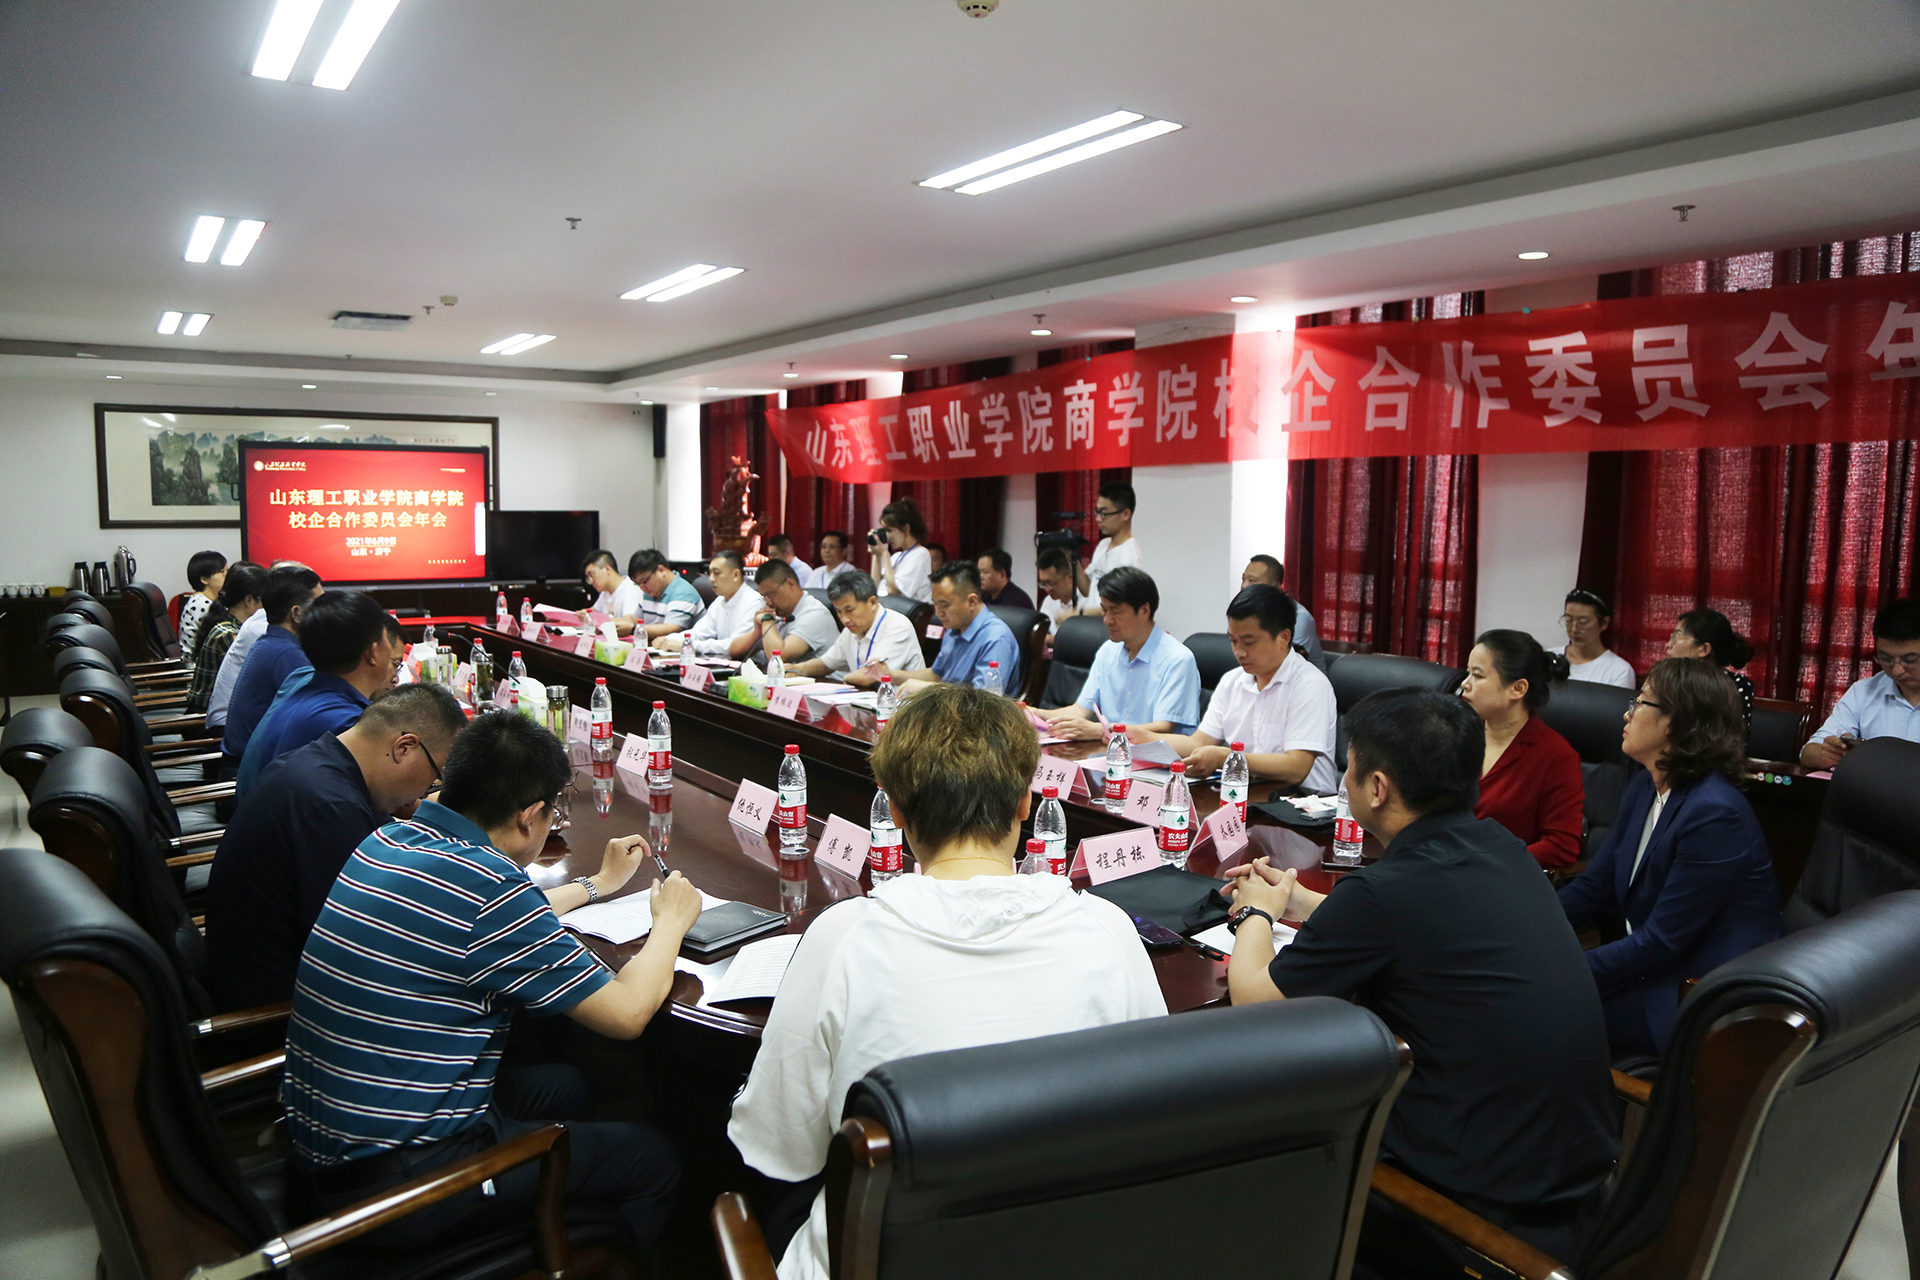 China Coal Group Participate In The School-Enterprise Cooperation Annual Meeting Of The Business School Of Shandong Polytechnic Vocational College